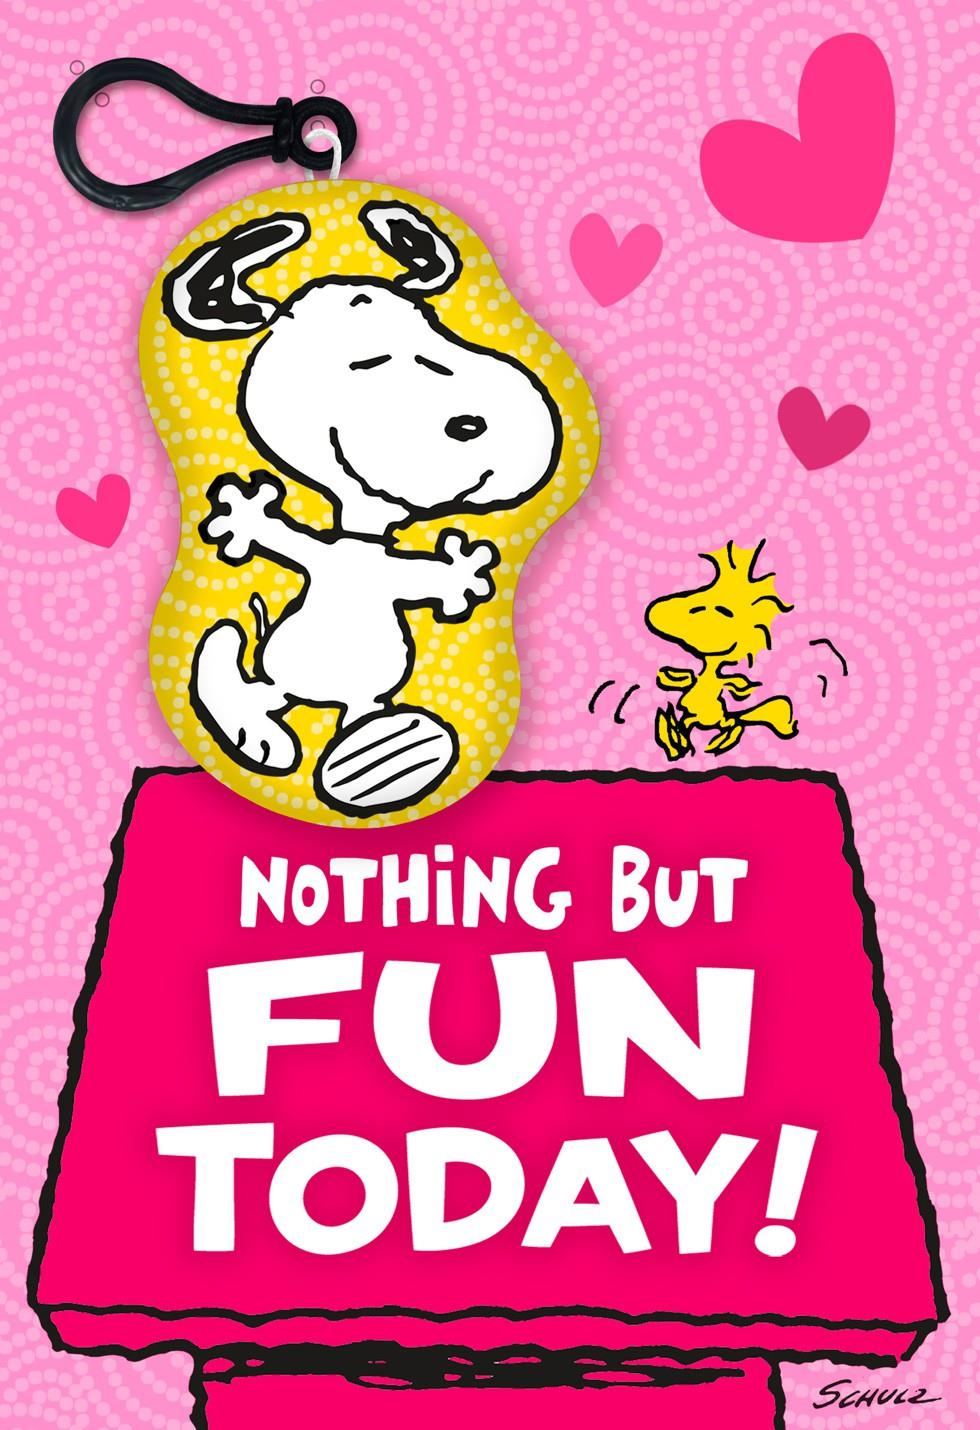 Peanuts Snoopy And Woodstock Valentines Day Card With